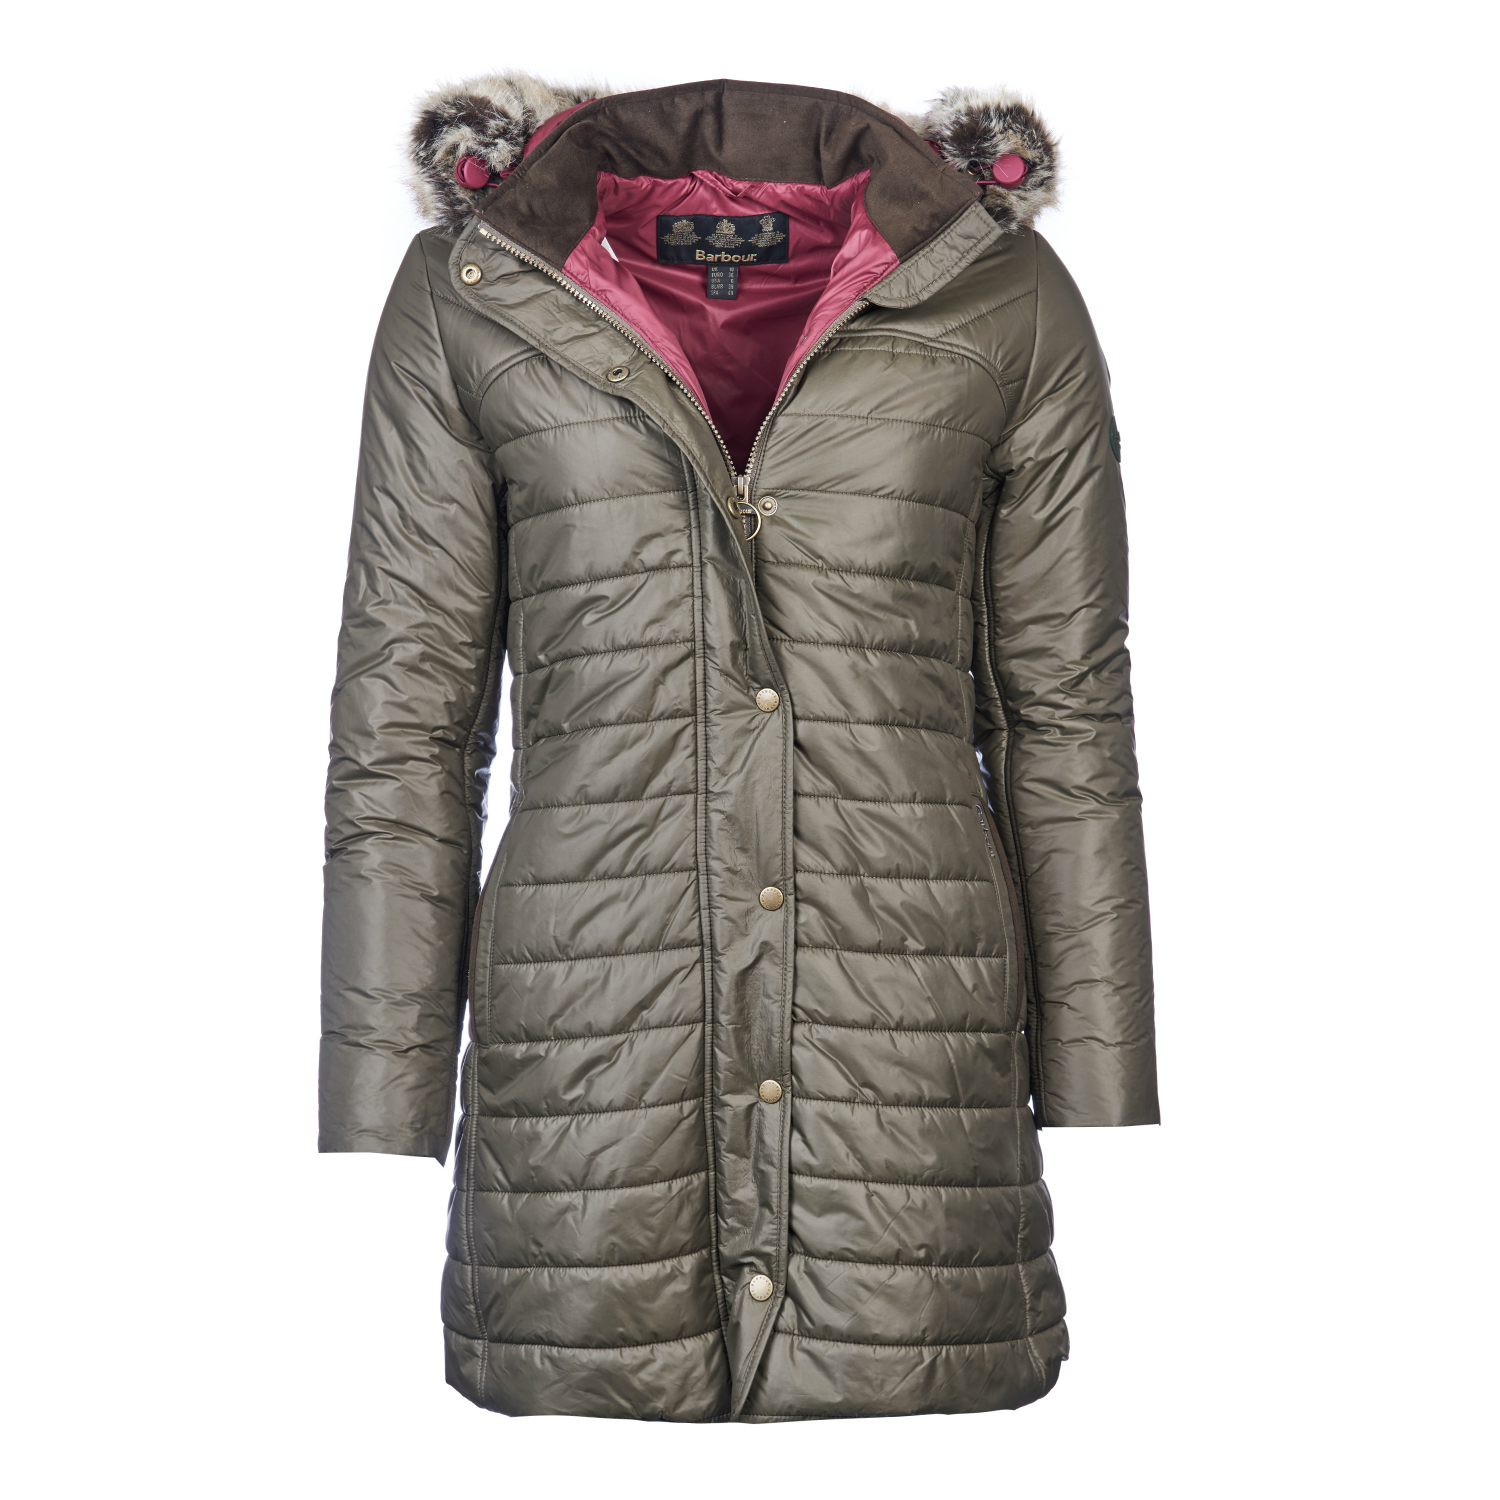 s barbour lifestyle black clearance men mens quilt begumpalace jackets lutz jacket quilted sale